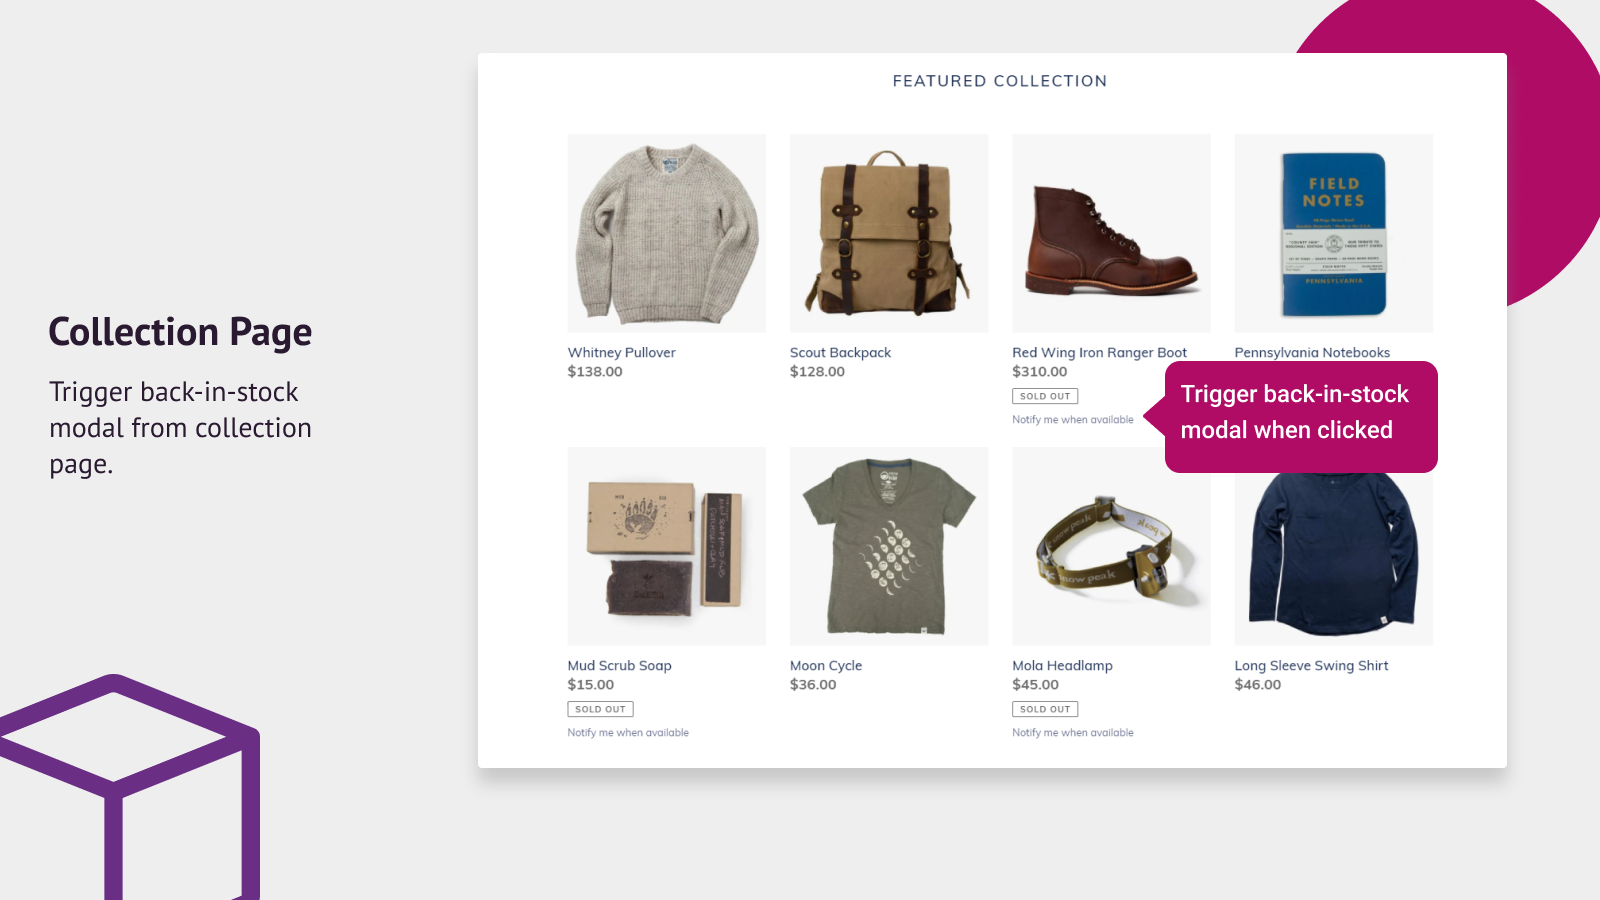 Trigger back-in-stock modal from collection page